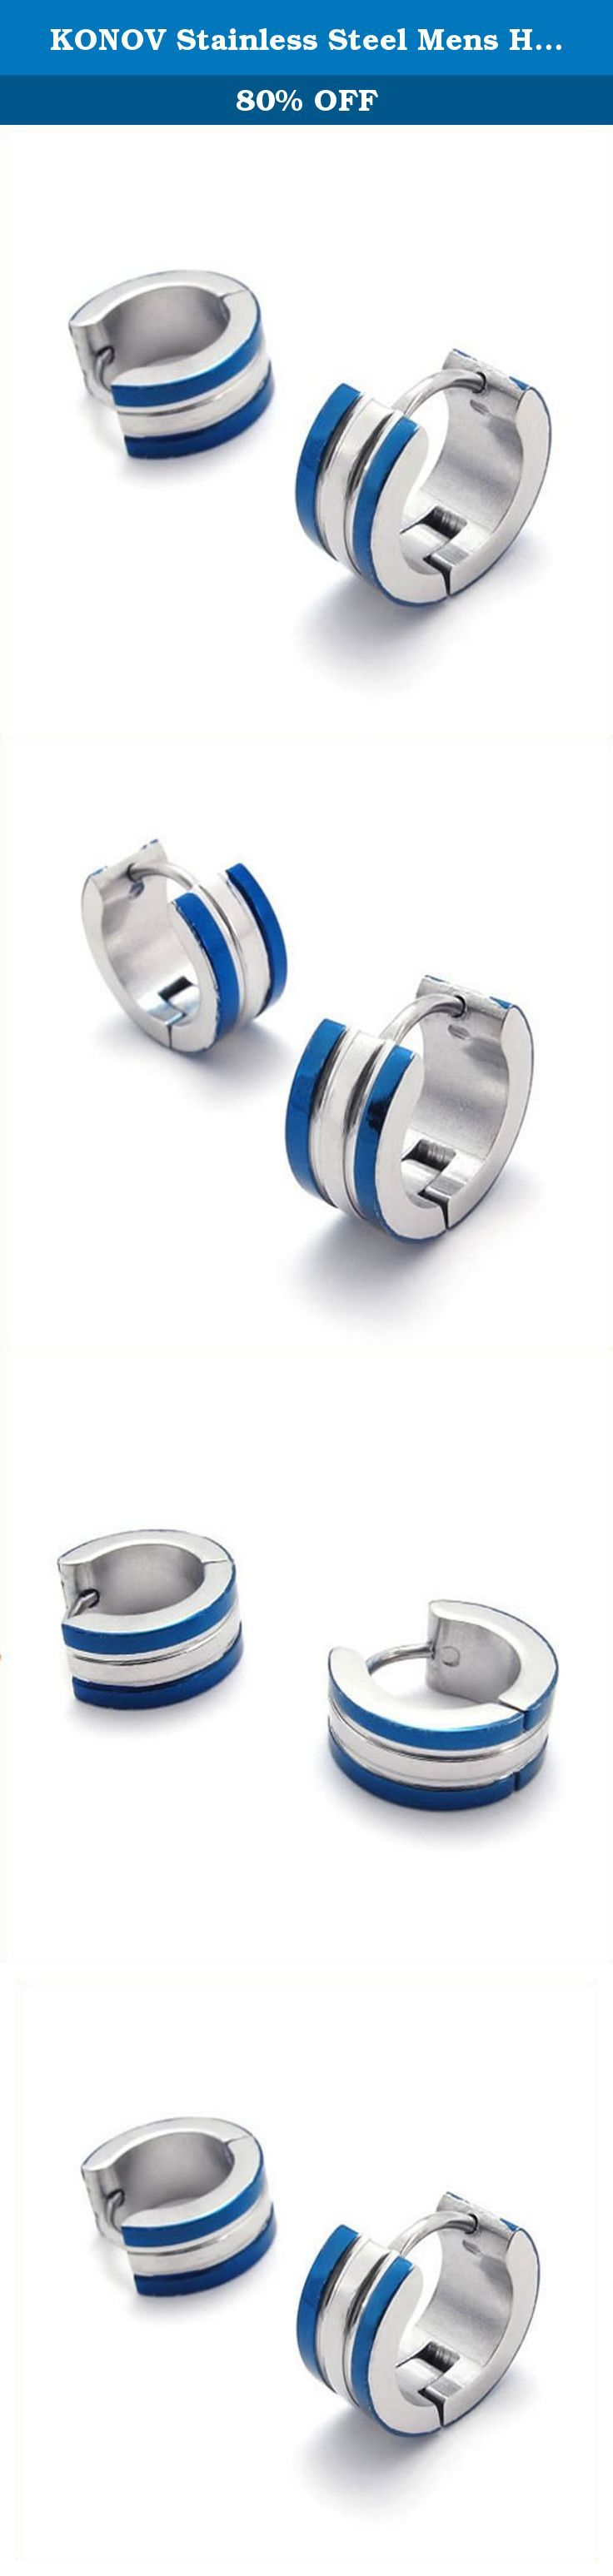 KONOV Stainless Steel Mens Huggie Hinged Hoop Stud Earrings Set, 2pcs, Color Blue Silver. Why choose Stainless Steel Jewelry? Stainless Steel jewelry does not tarnish and oxidize, which can last longer than other jewelries. It is able to endure a lot of wear and tear. And it is amazingly hypoallergenic. Such advantages make it a more popular accessory. Why need Stainless Steel Jewelry? High quality stainless steel has high resistance to rust, corrosion and tarnishing, which requires…